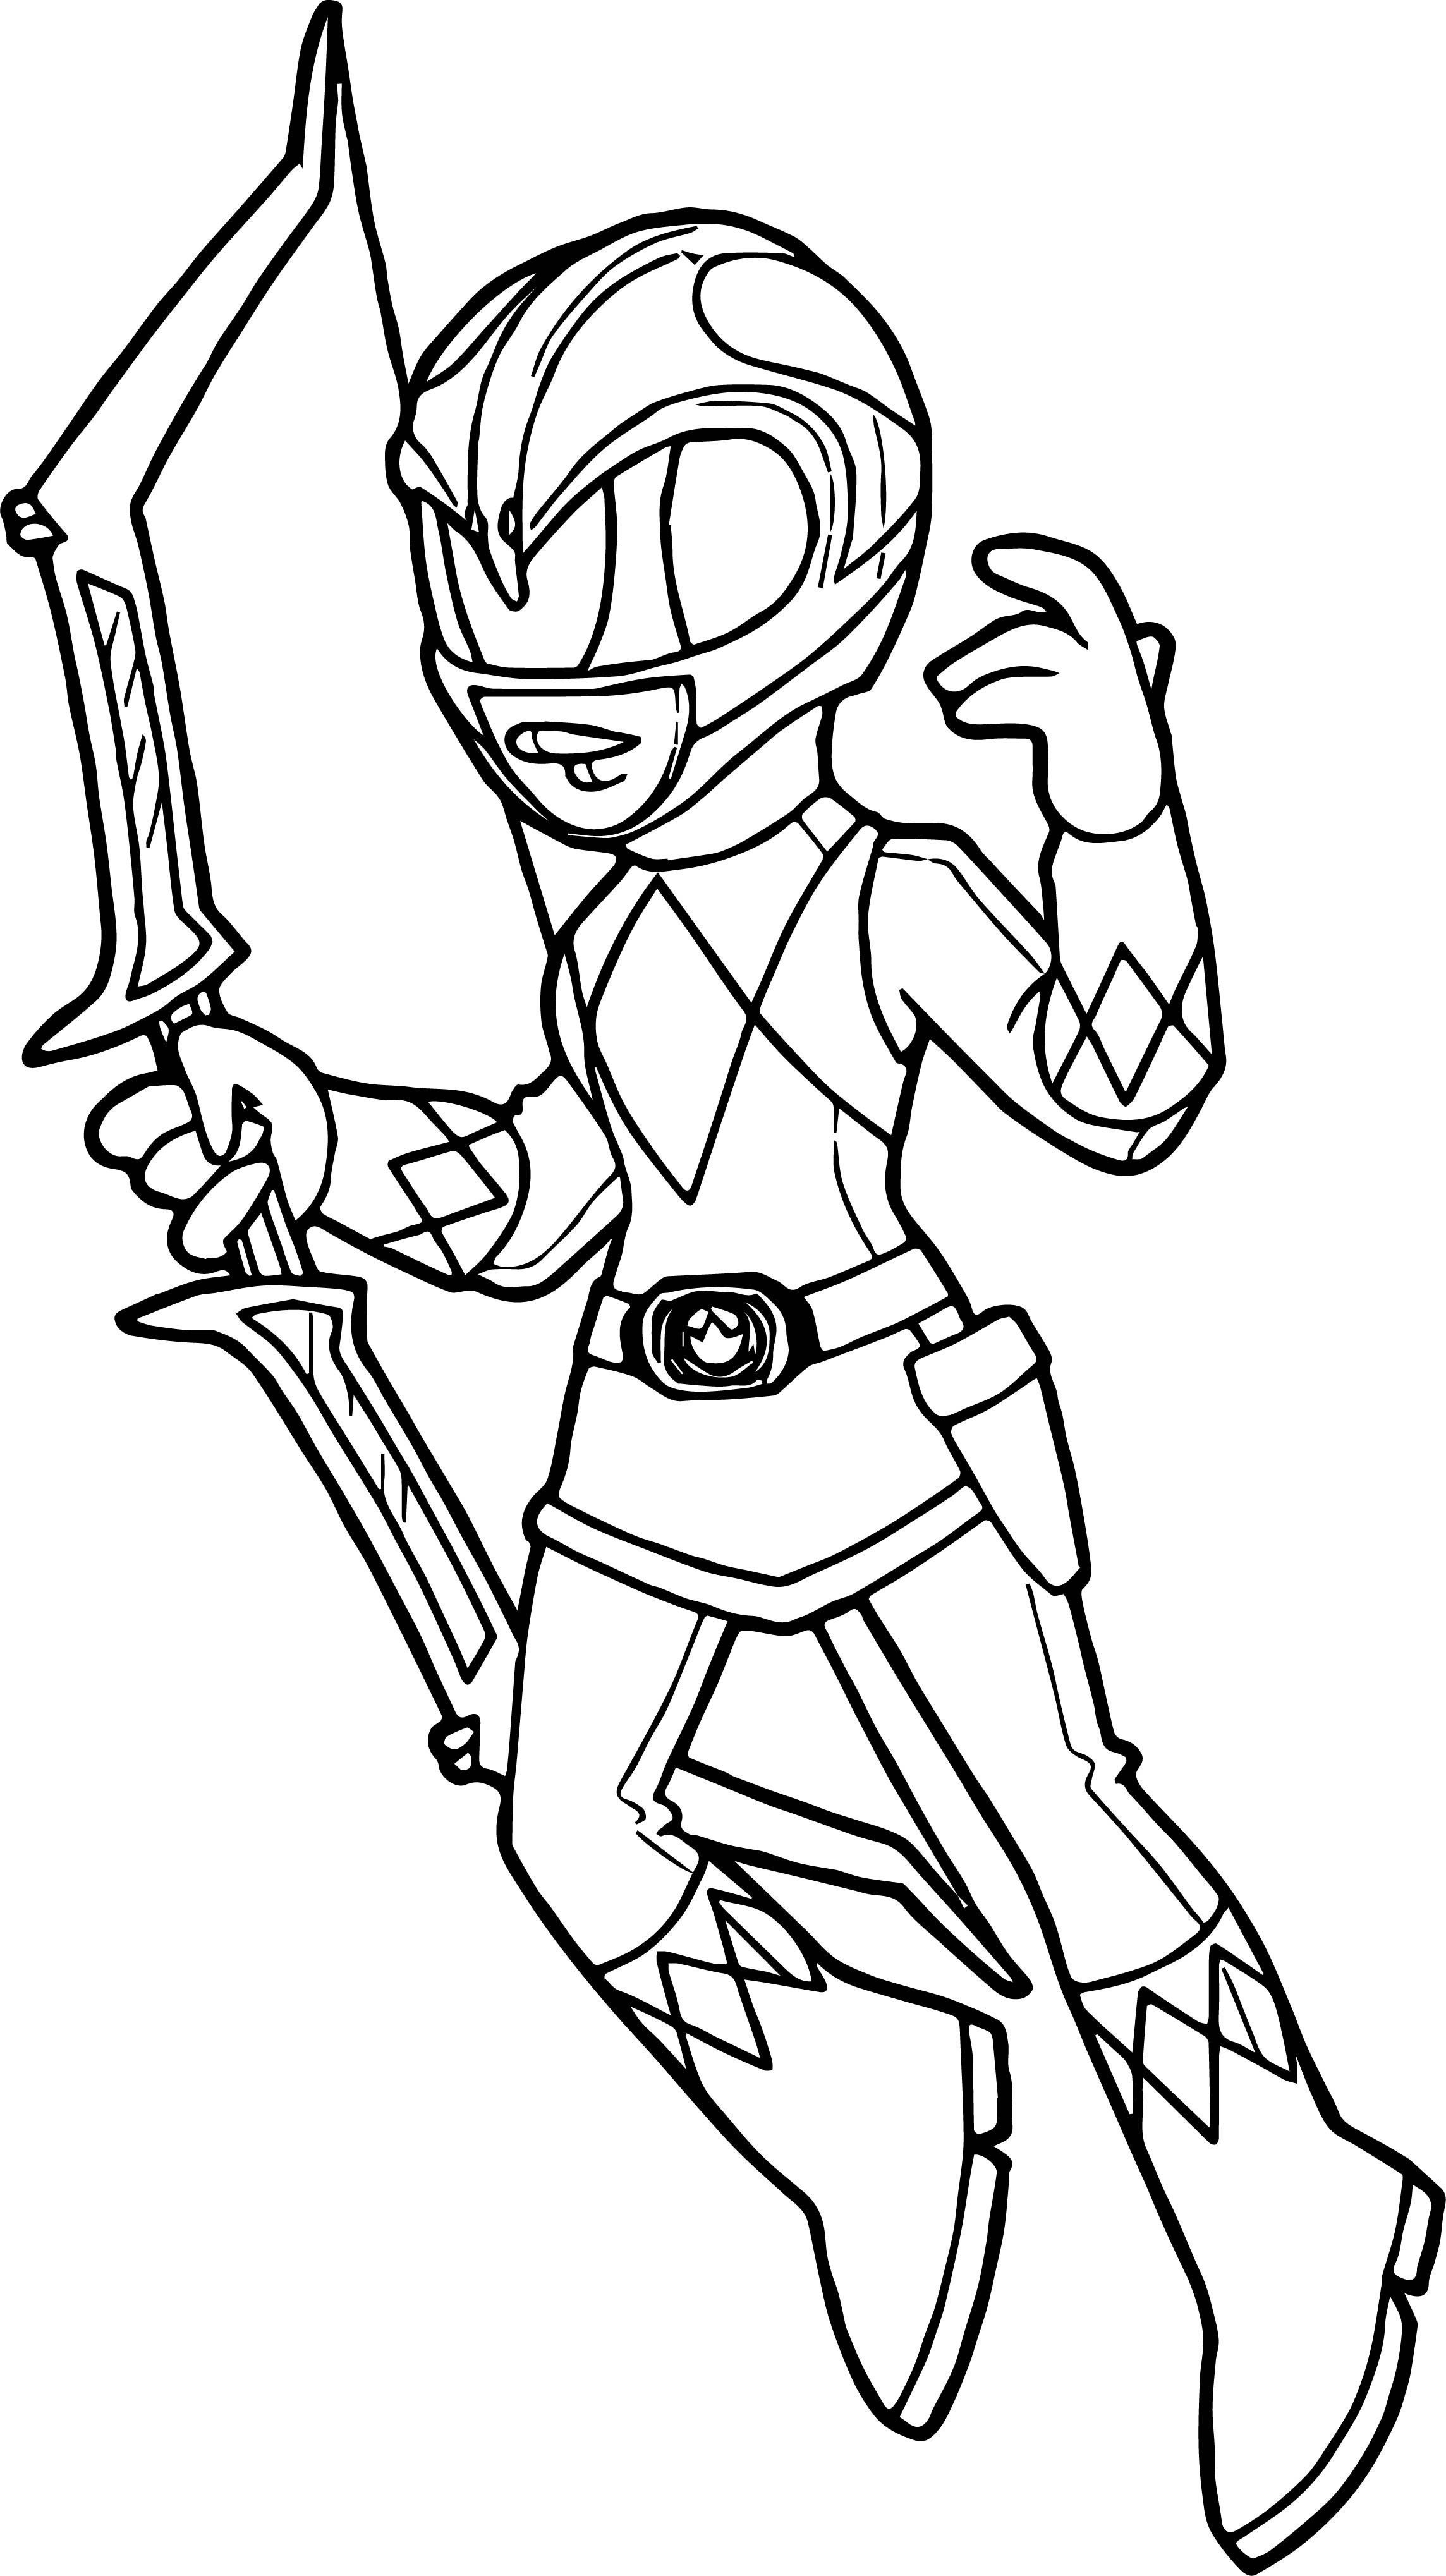 power rangers pictures to color free easy to print power rangers coloring pages tulamama color rangers power pictures to